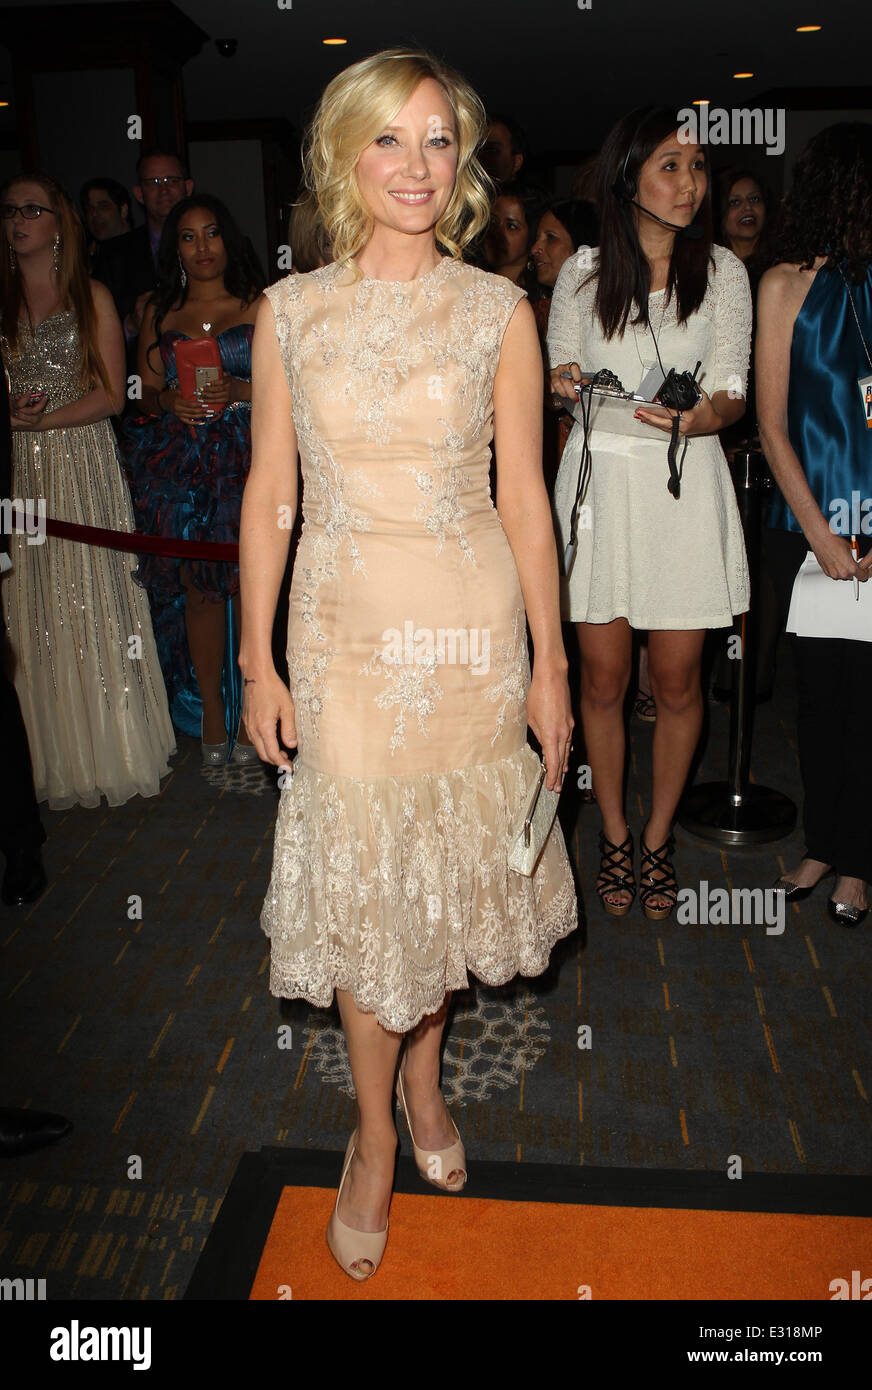 20th Annual Race To Erase MS Gala 'Love To Erase MS' - Cocktail Reception  Featuring: Anne Heche Where: - Stock Image